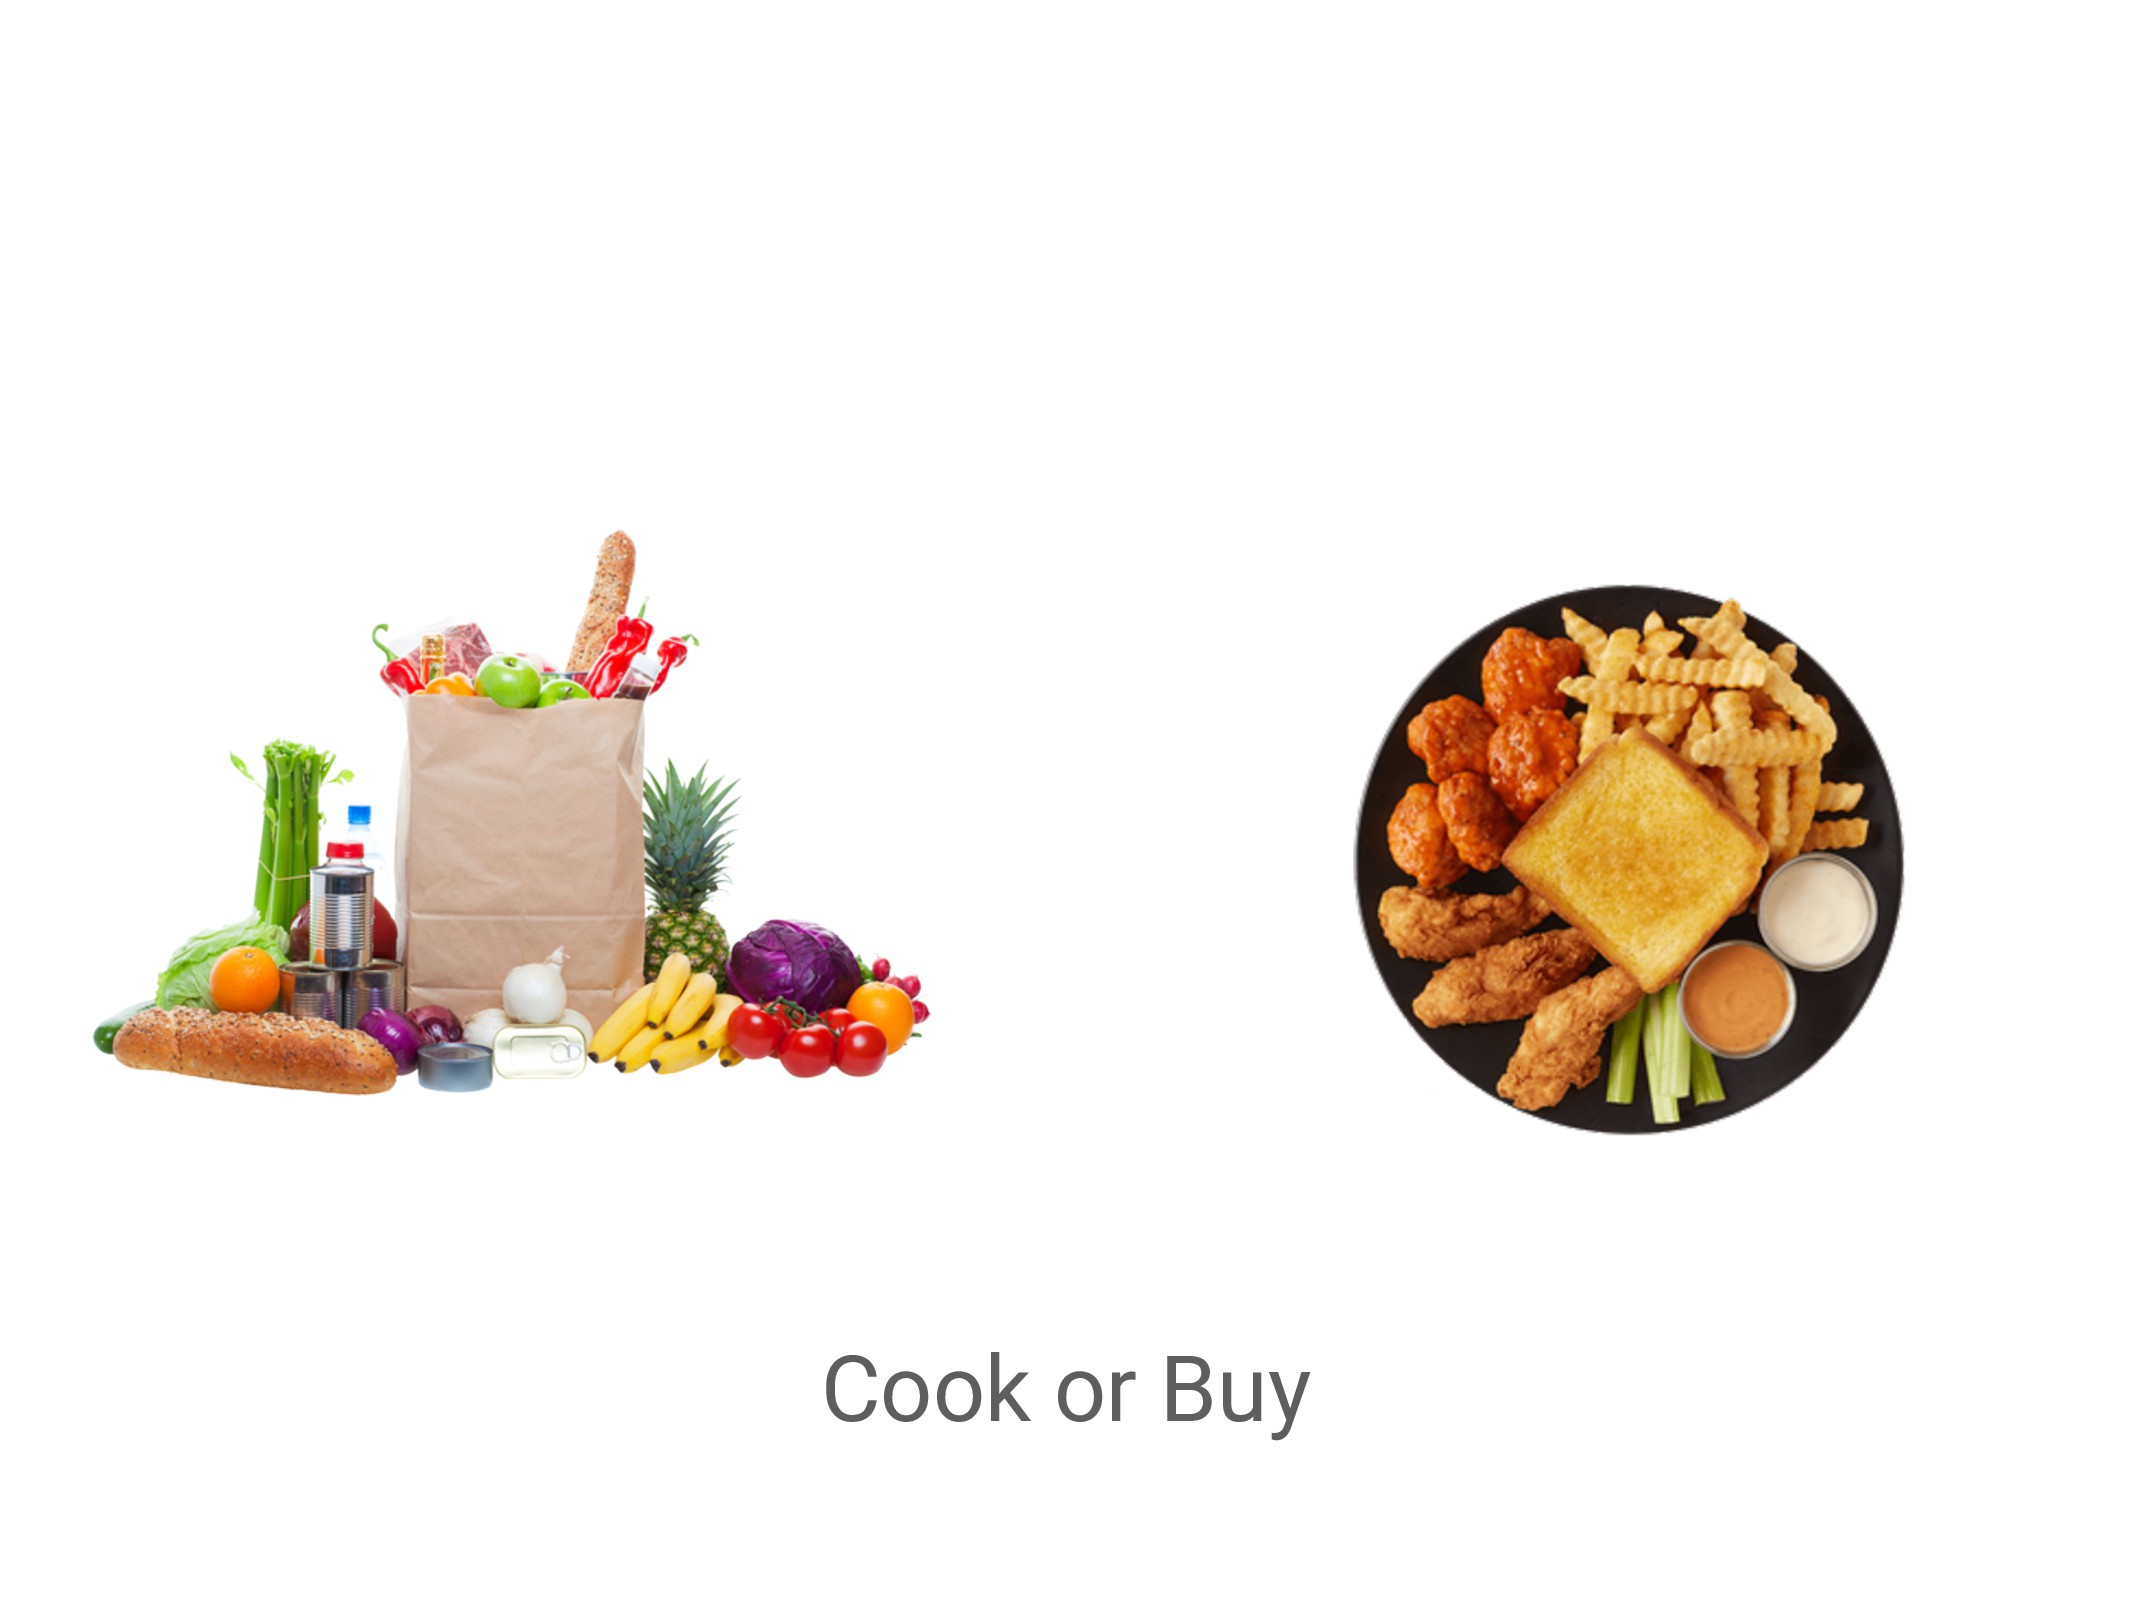 Cook or Buy